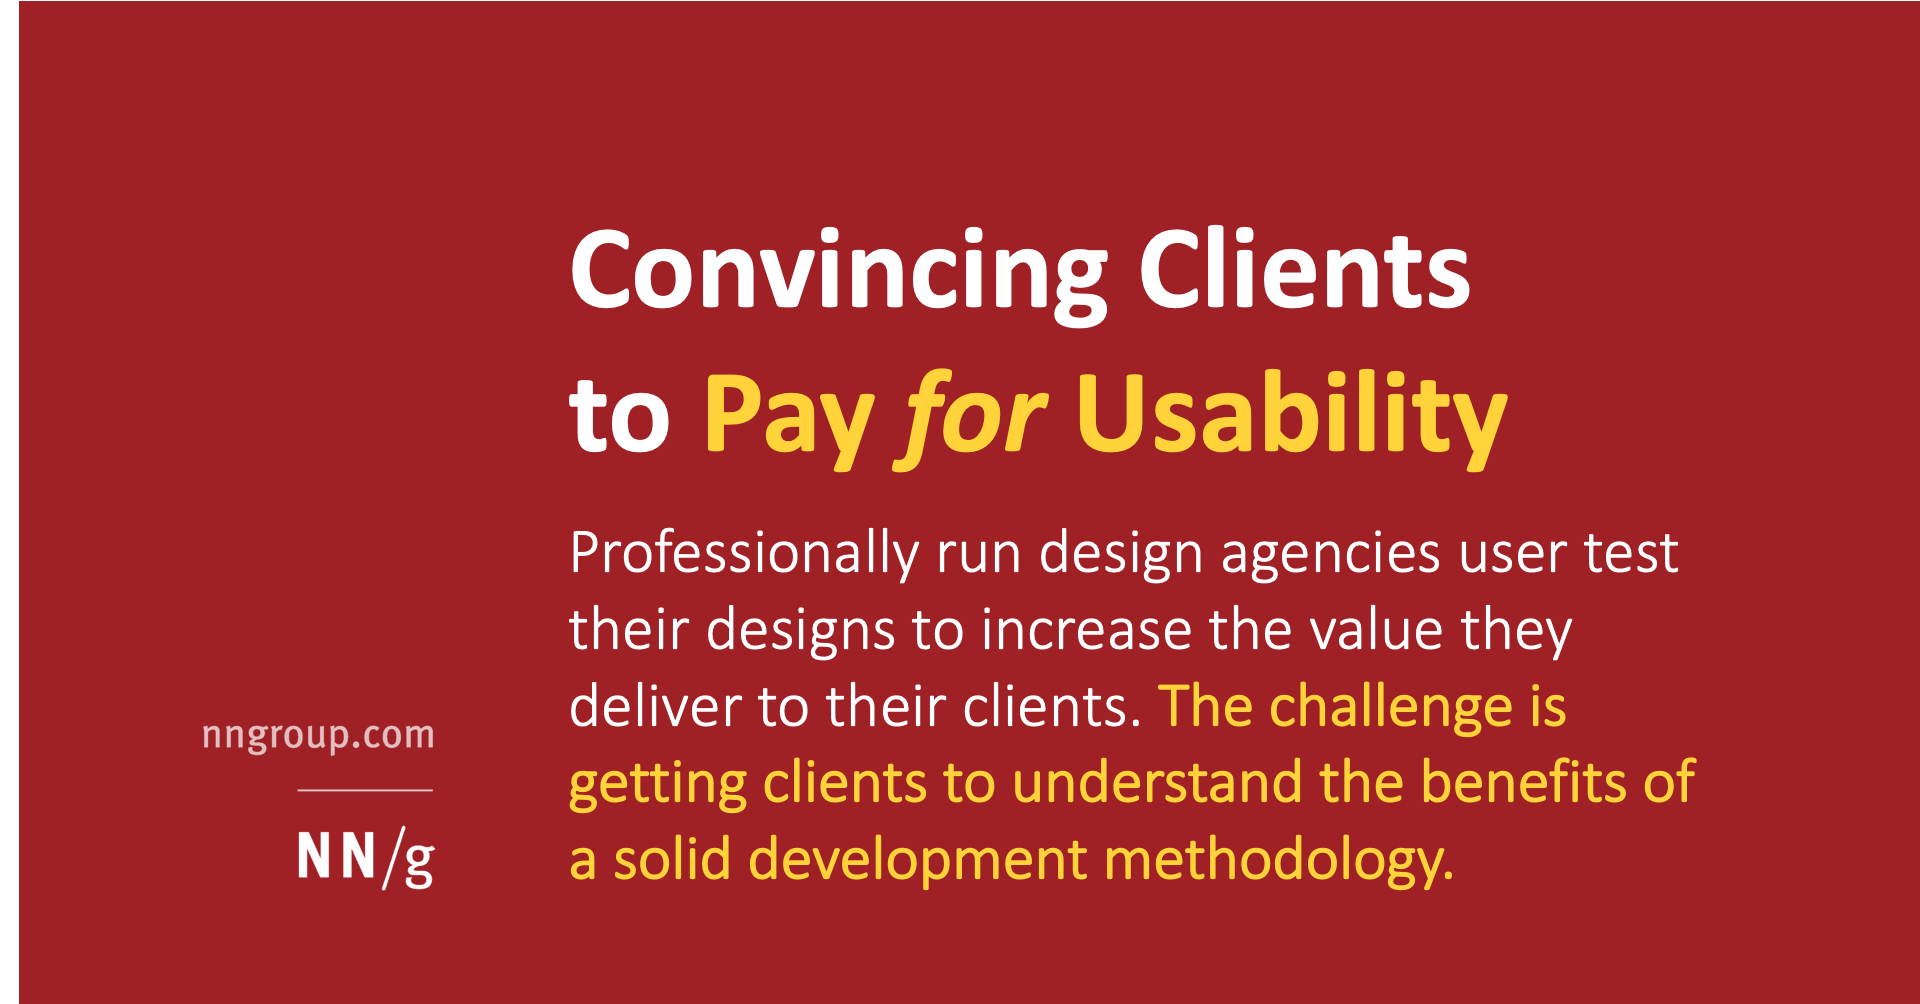 Convincing Clients to Pay for Usability